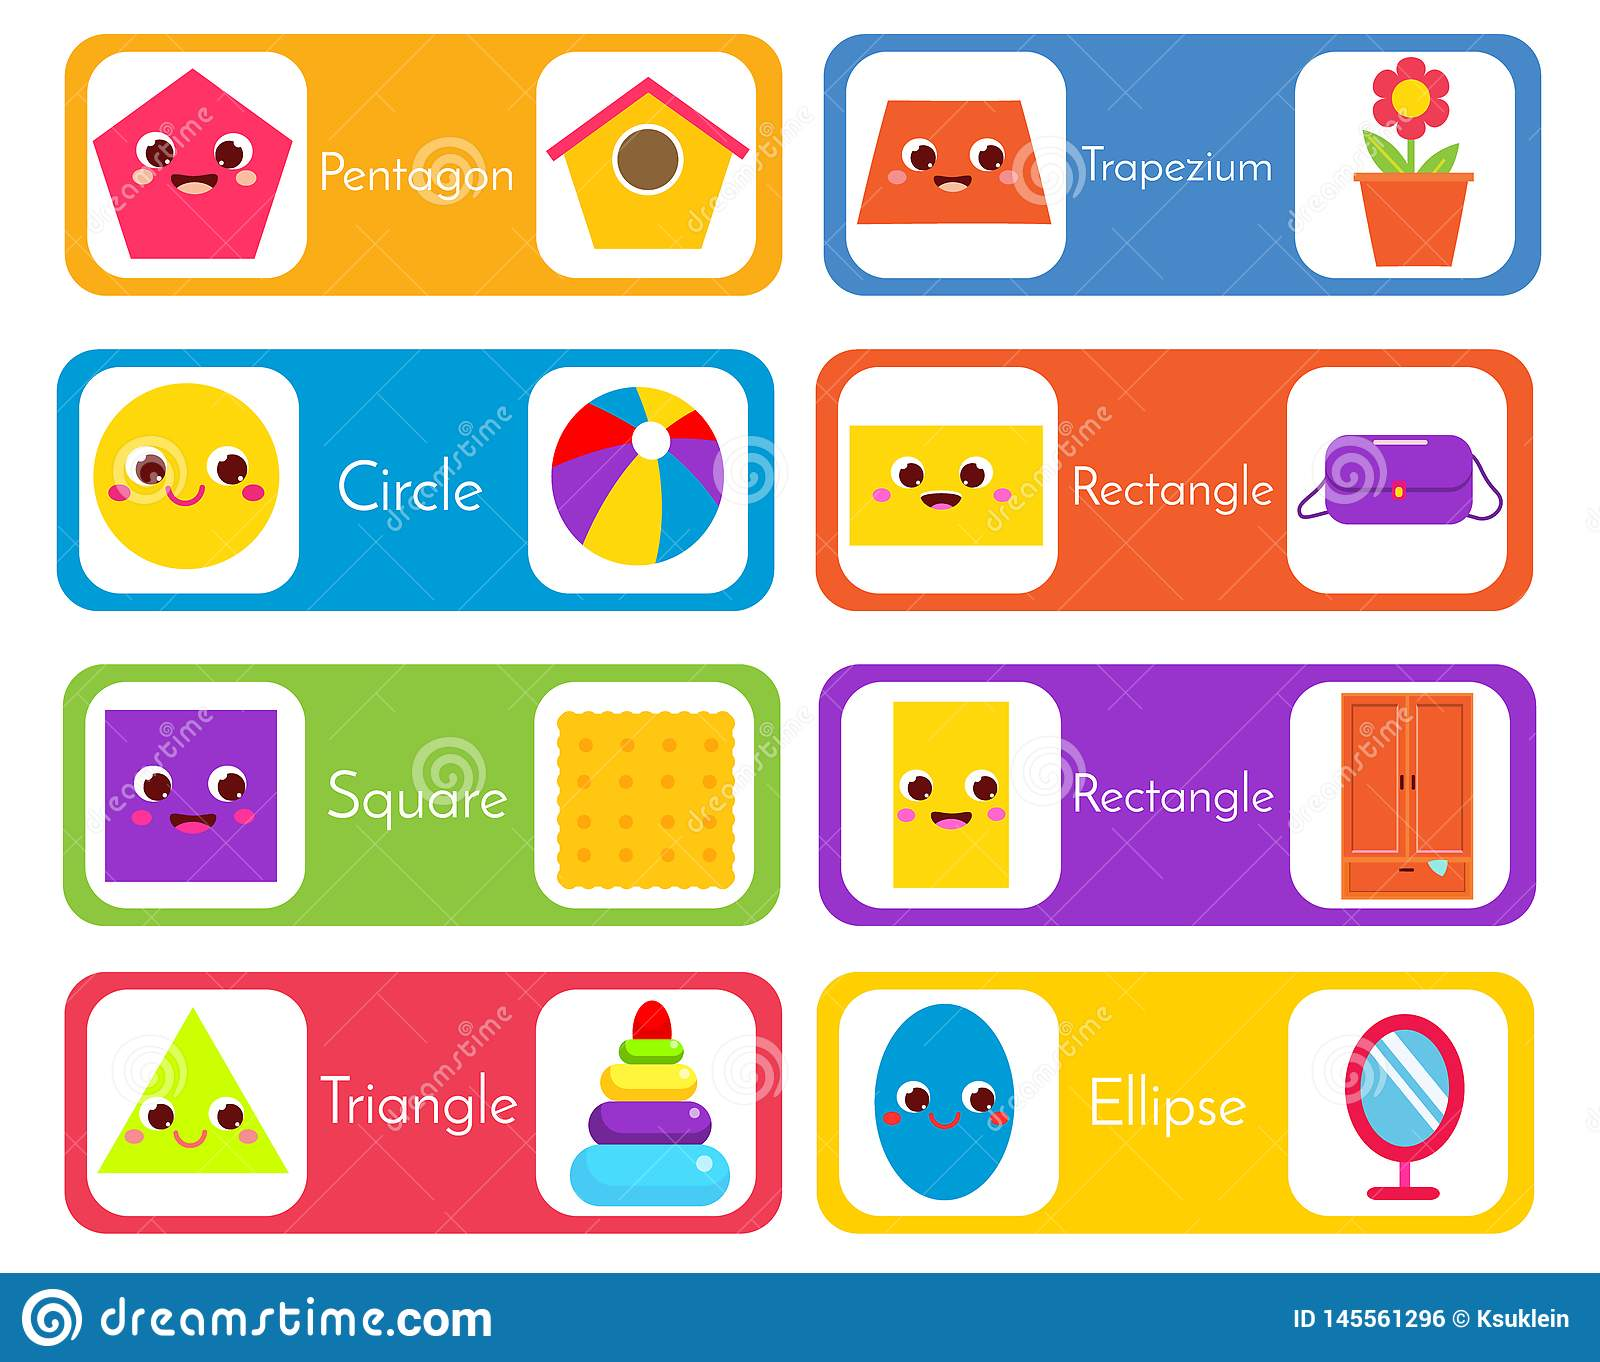 Printables Of Learning Shapes For Kids